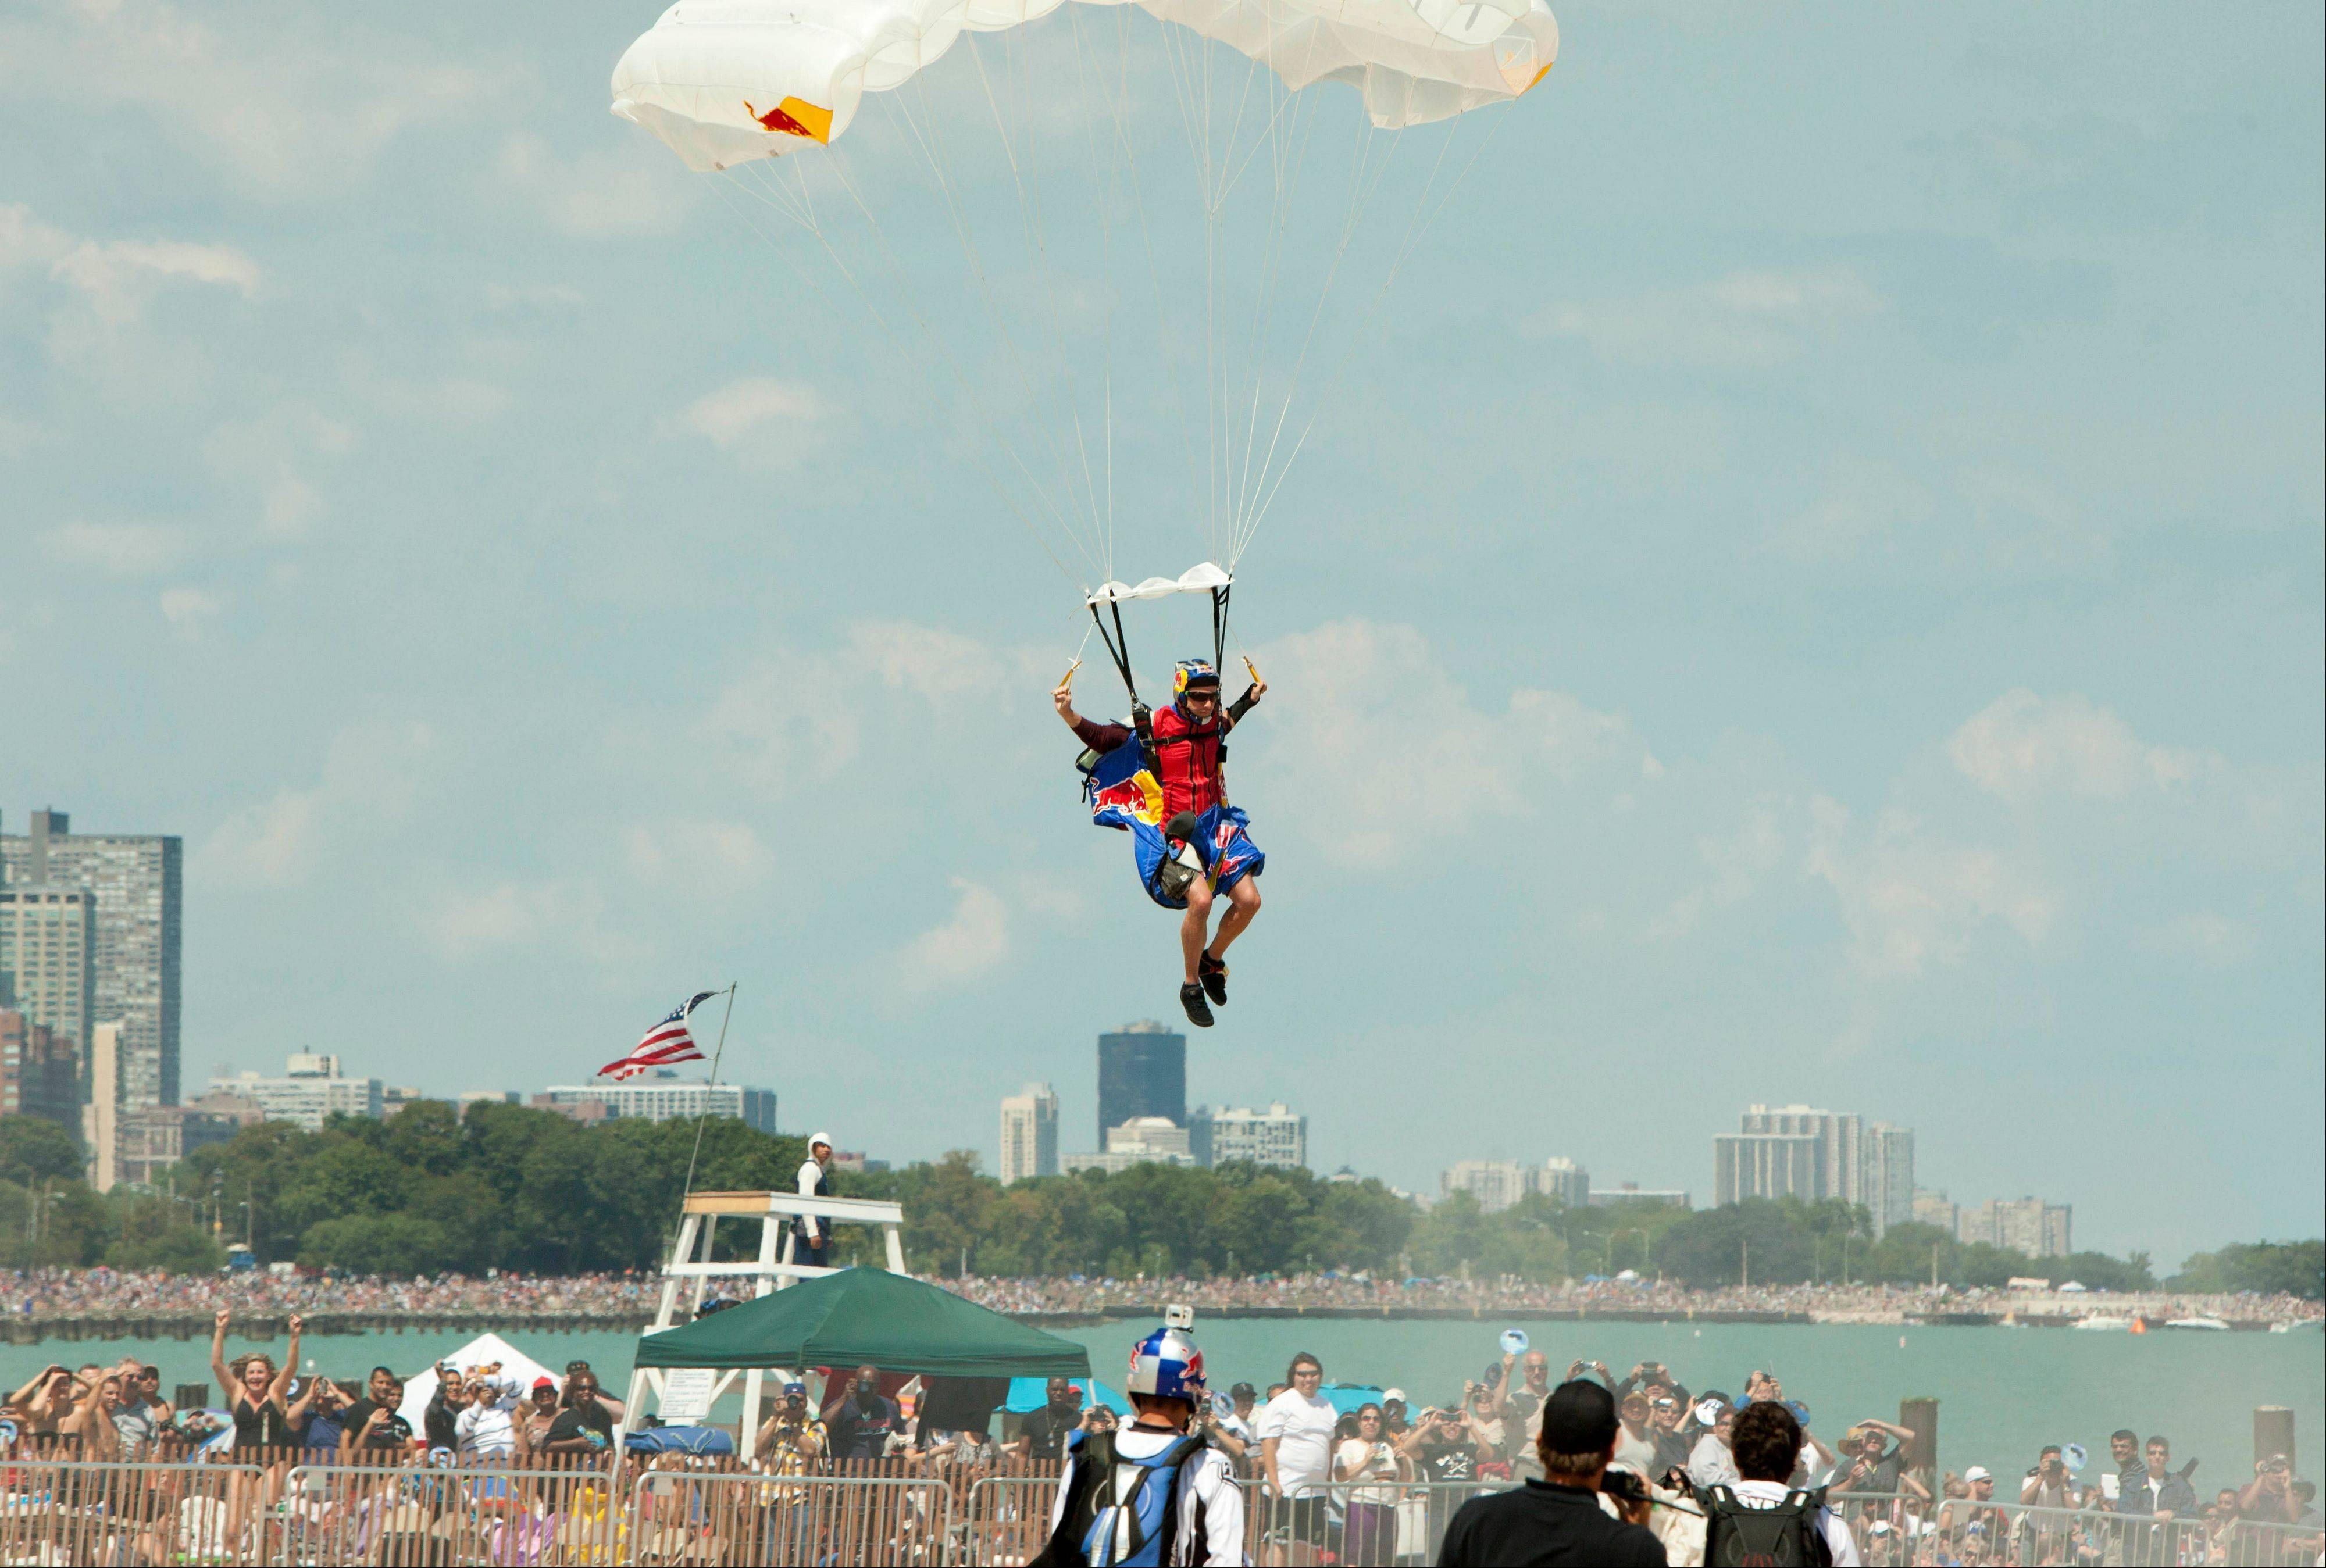 A member of the Red Bull Air Force Team parachutes on to North Beach before a large crowd on the opening day of the Chicago Air and Water Show on Saturday, Aug. 18, 2012 in Chicago.